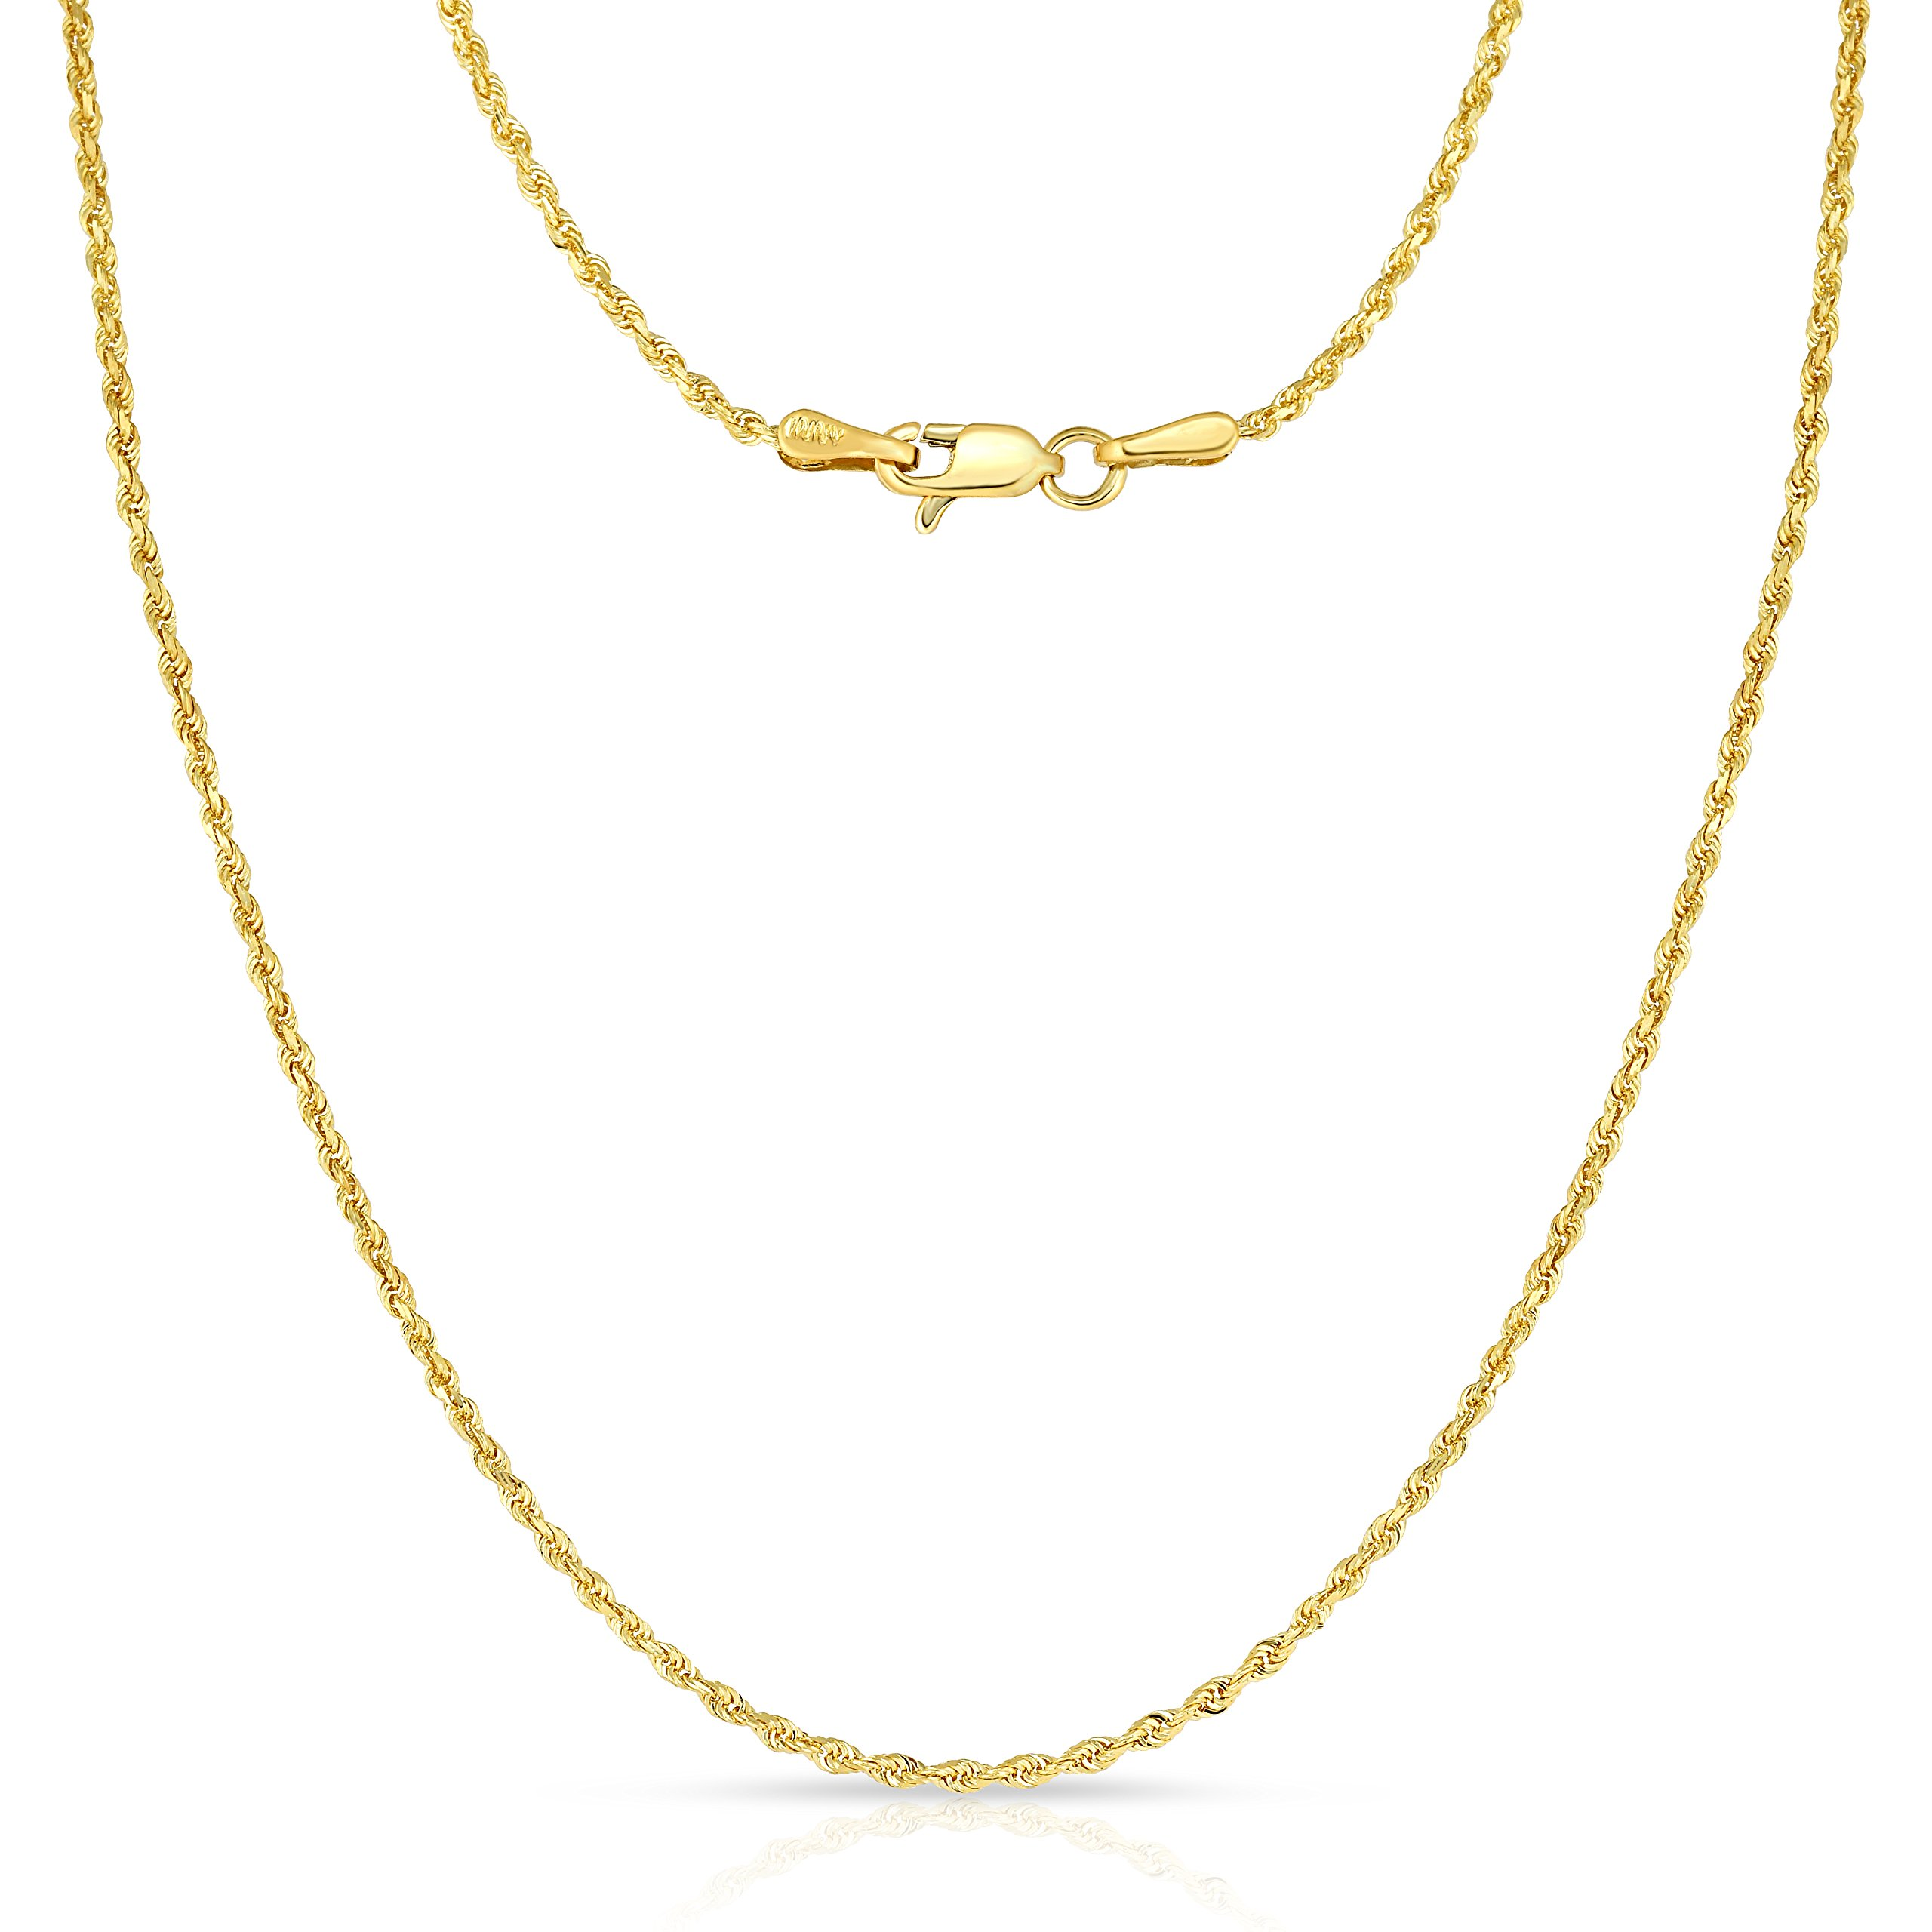 20 Inch 10k Yellow Gold Thin Solid Diamond Cut Rope Chain Necklace, 1mm